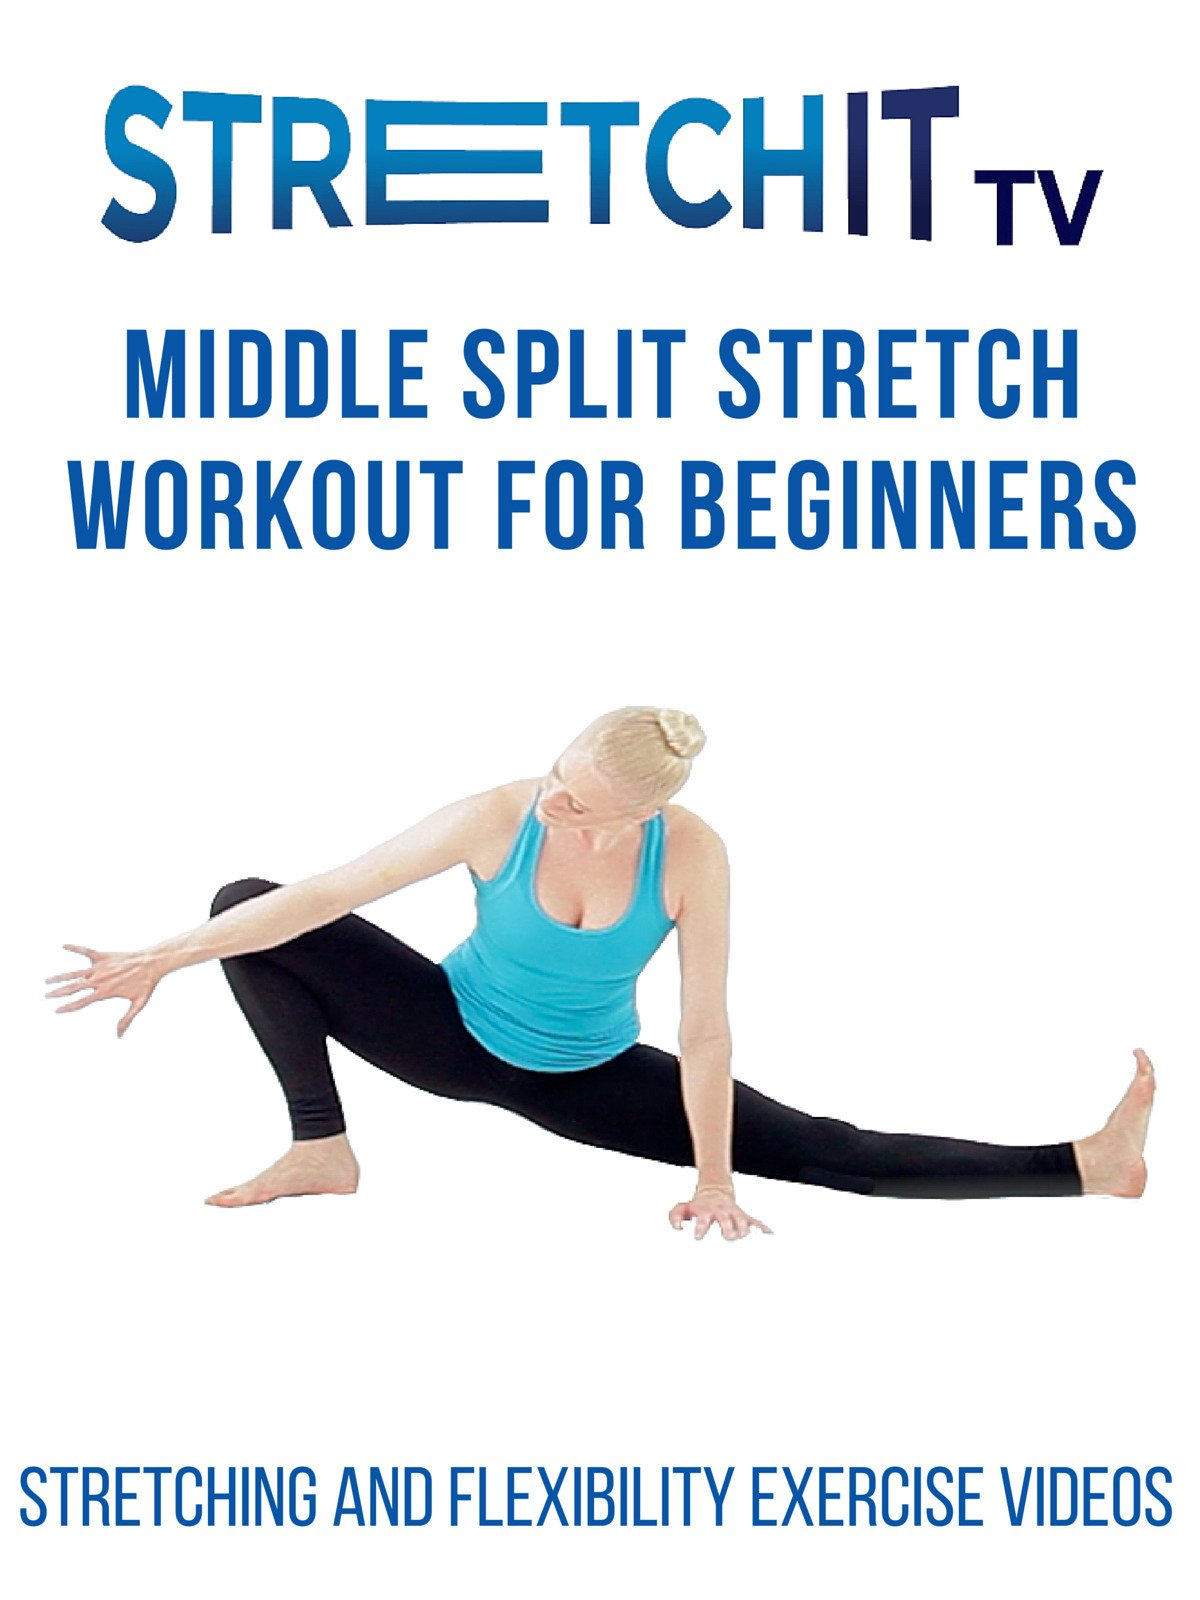 Watch Stretching And Flexibility Exercise Videos Middle Split Stretch Workout For Beginners Prime Video